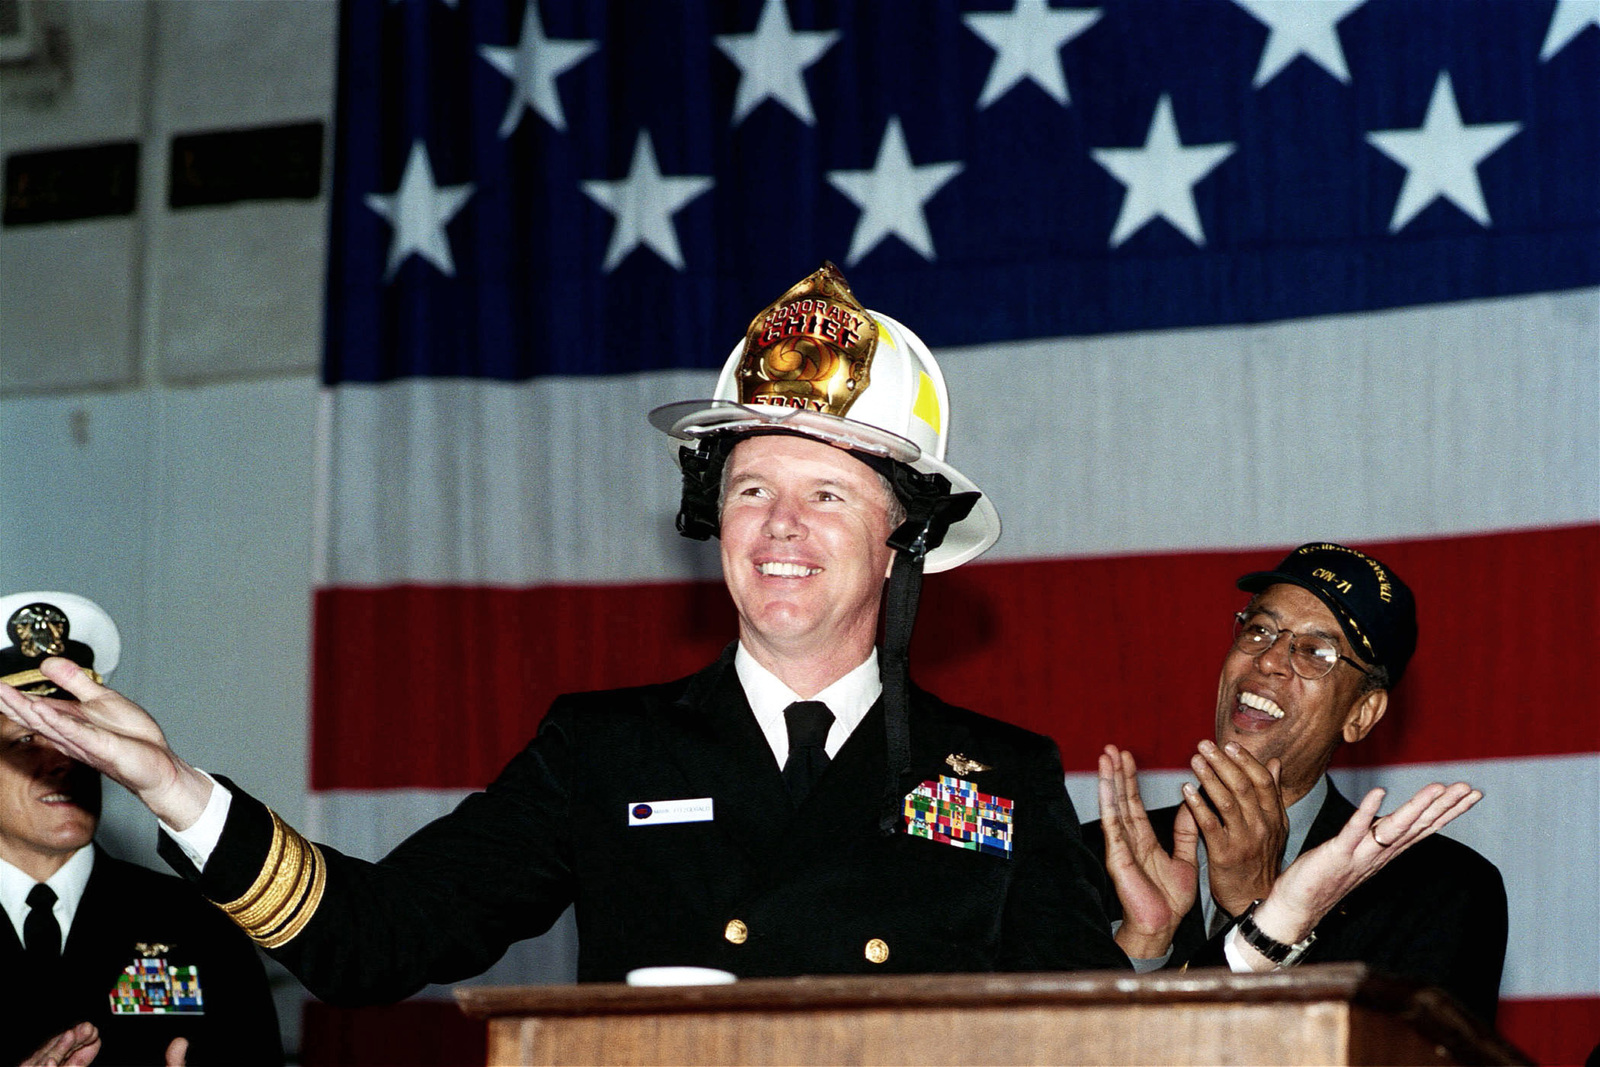 US Navy (USN) Rear Admiral (RADM) Mark Fitzgerald, Commander, Carrier Group Eight (CCG 8) (CVN 71) dons a honorary Fire Chiefs Helmet, presented by members of the New York City Fire Department during a return to the World Trade Center Flag Ceremony, held aboard the Aircraft Carrier USS THEODORE ROOSEVELT (CVN 71)